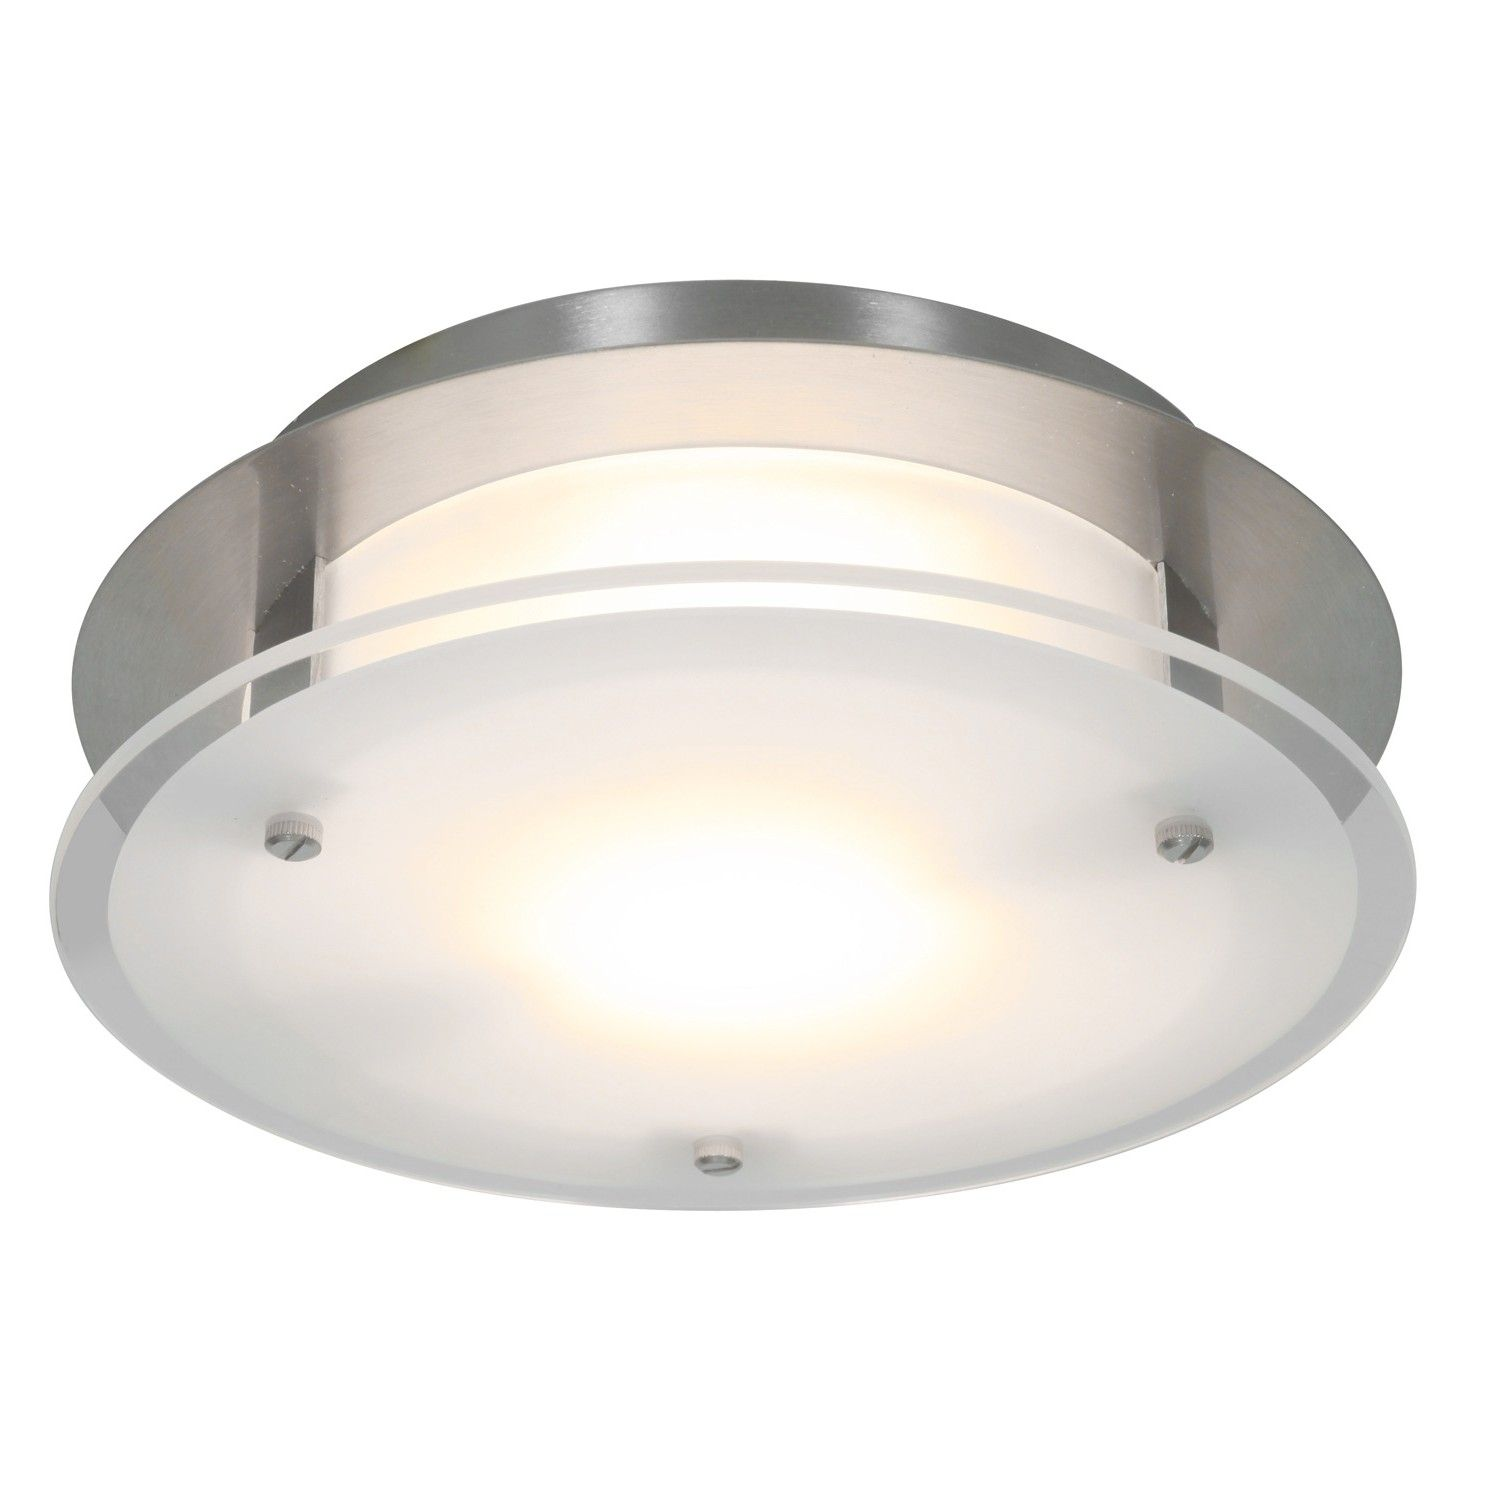 Bon Donu0027t Forget To Get This Ductless Bathroom Fan With Light, And View Full  Page Gallery As Well. Bathroom Light Fans Bath Fans Bathroom Fans Lights  Exhaust ...